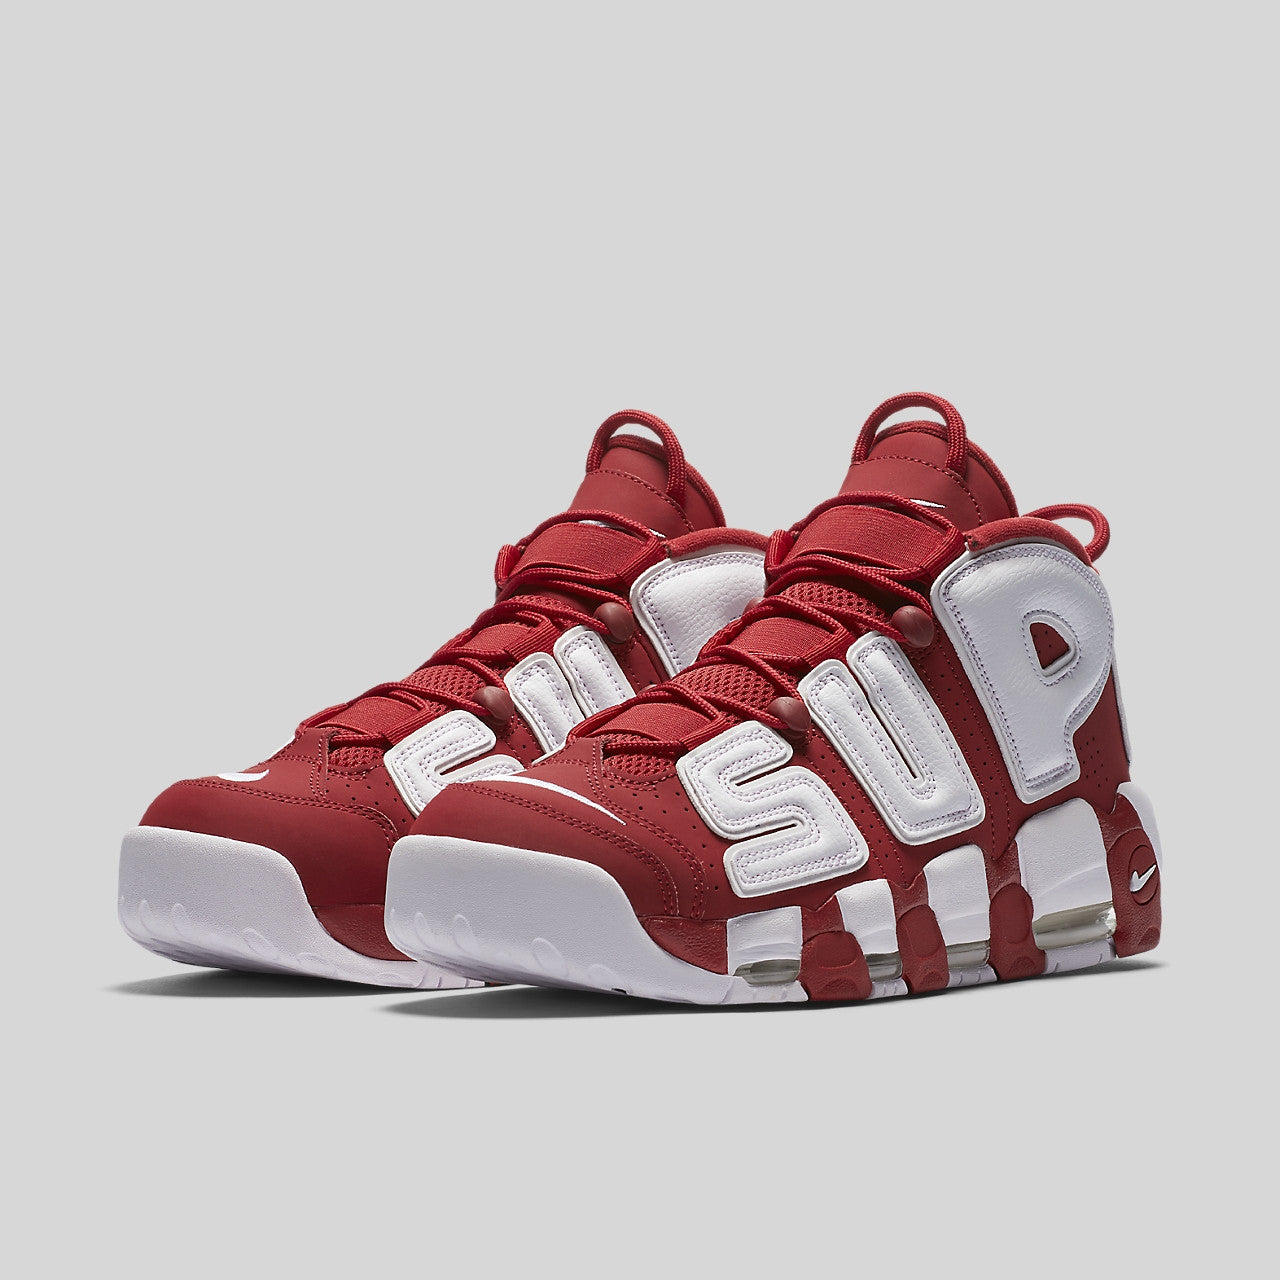 8b25fdc47623 Supreme x Nike Air More Uptempo Suptempo Red (902290-600)